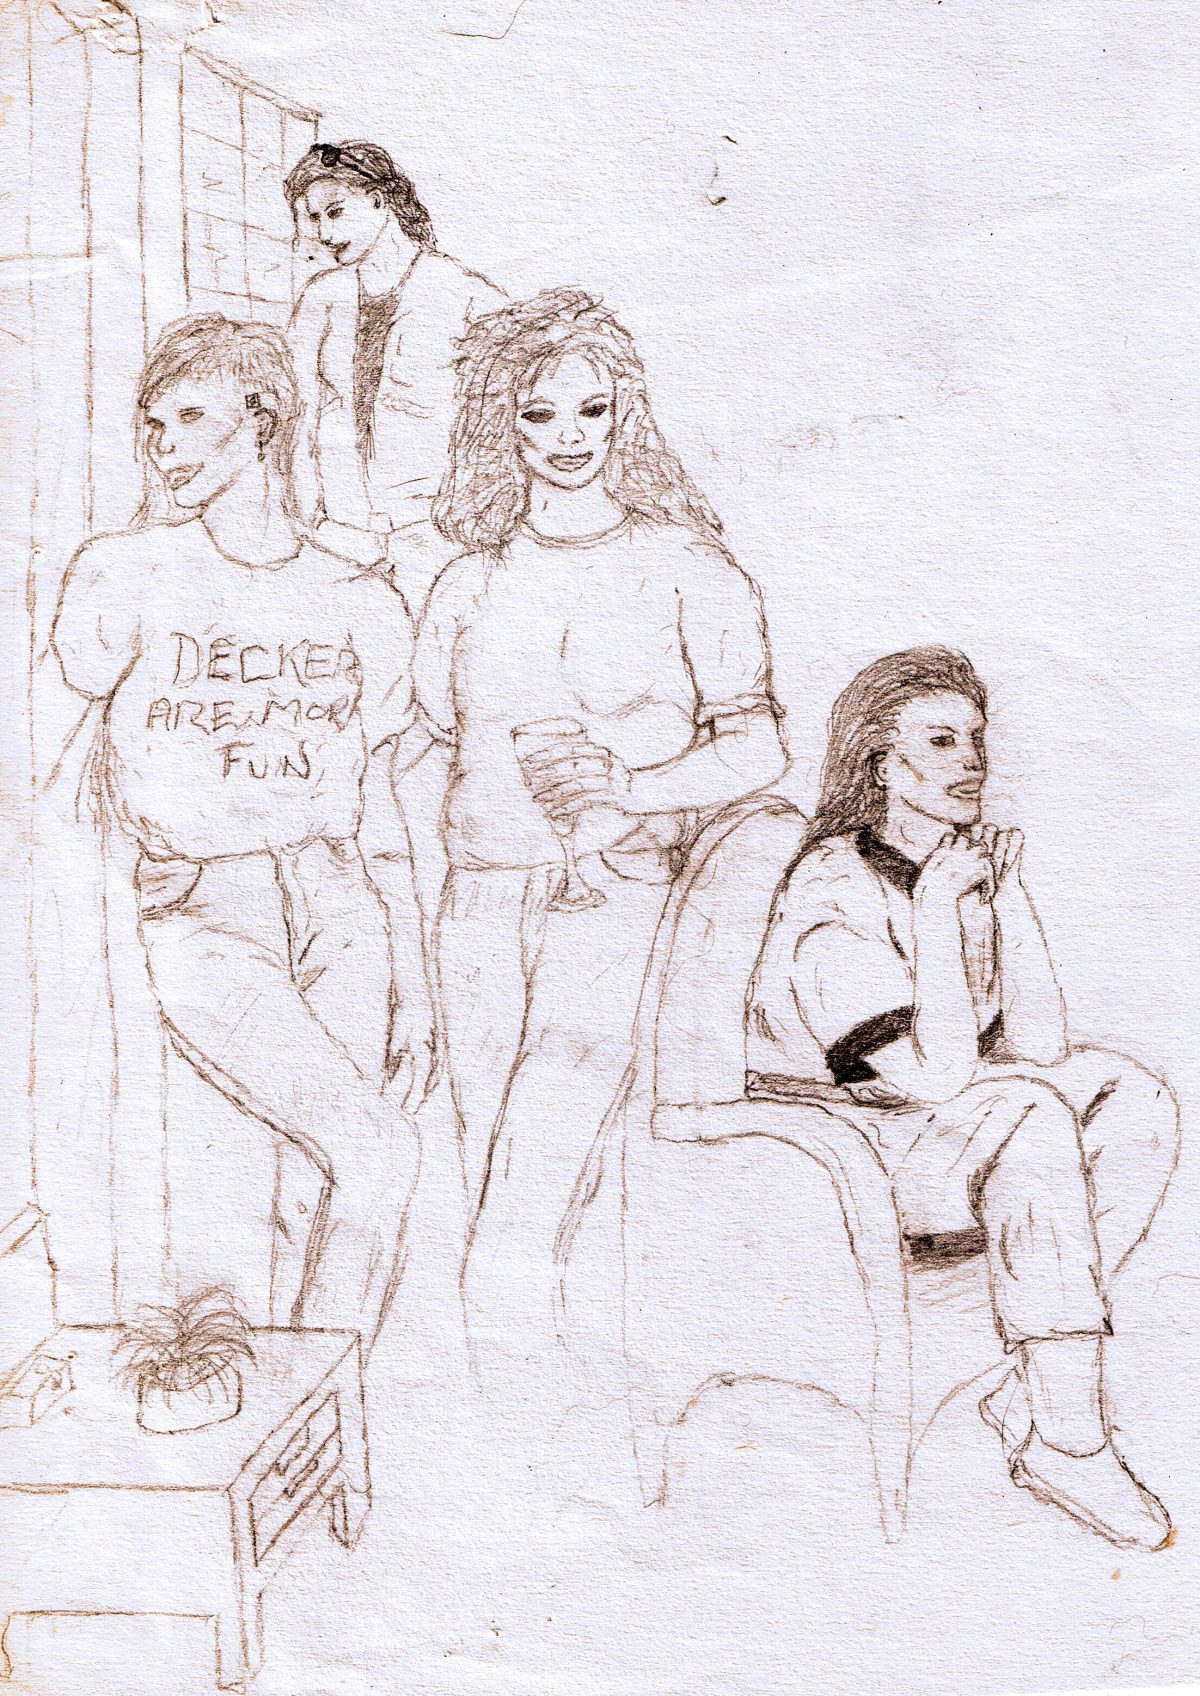 Taking it Easy, shadowrun group (artwork, sketch, 1991)